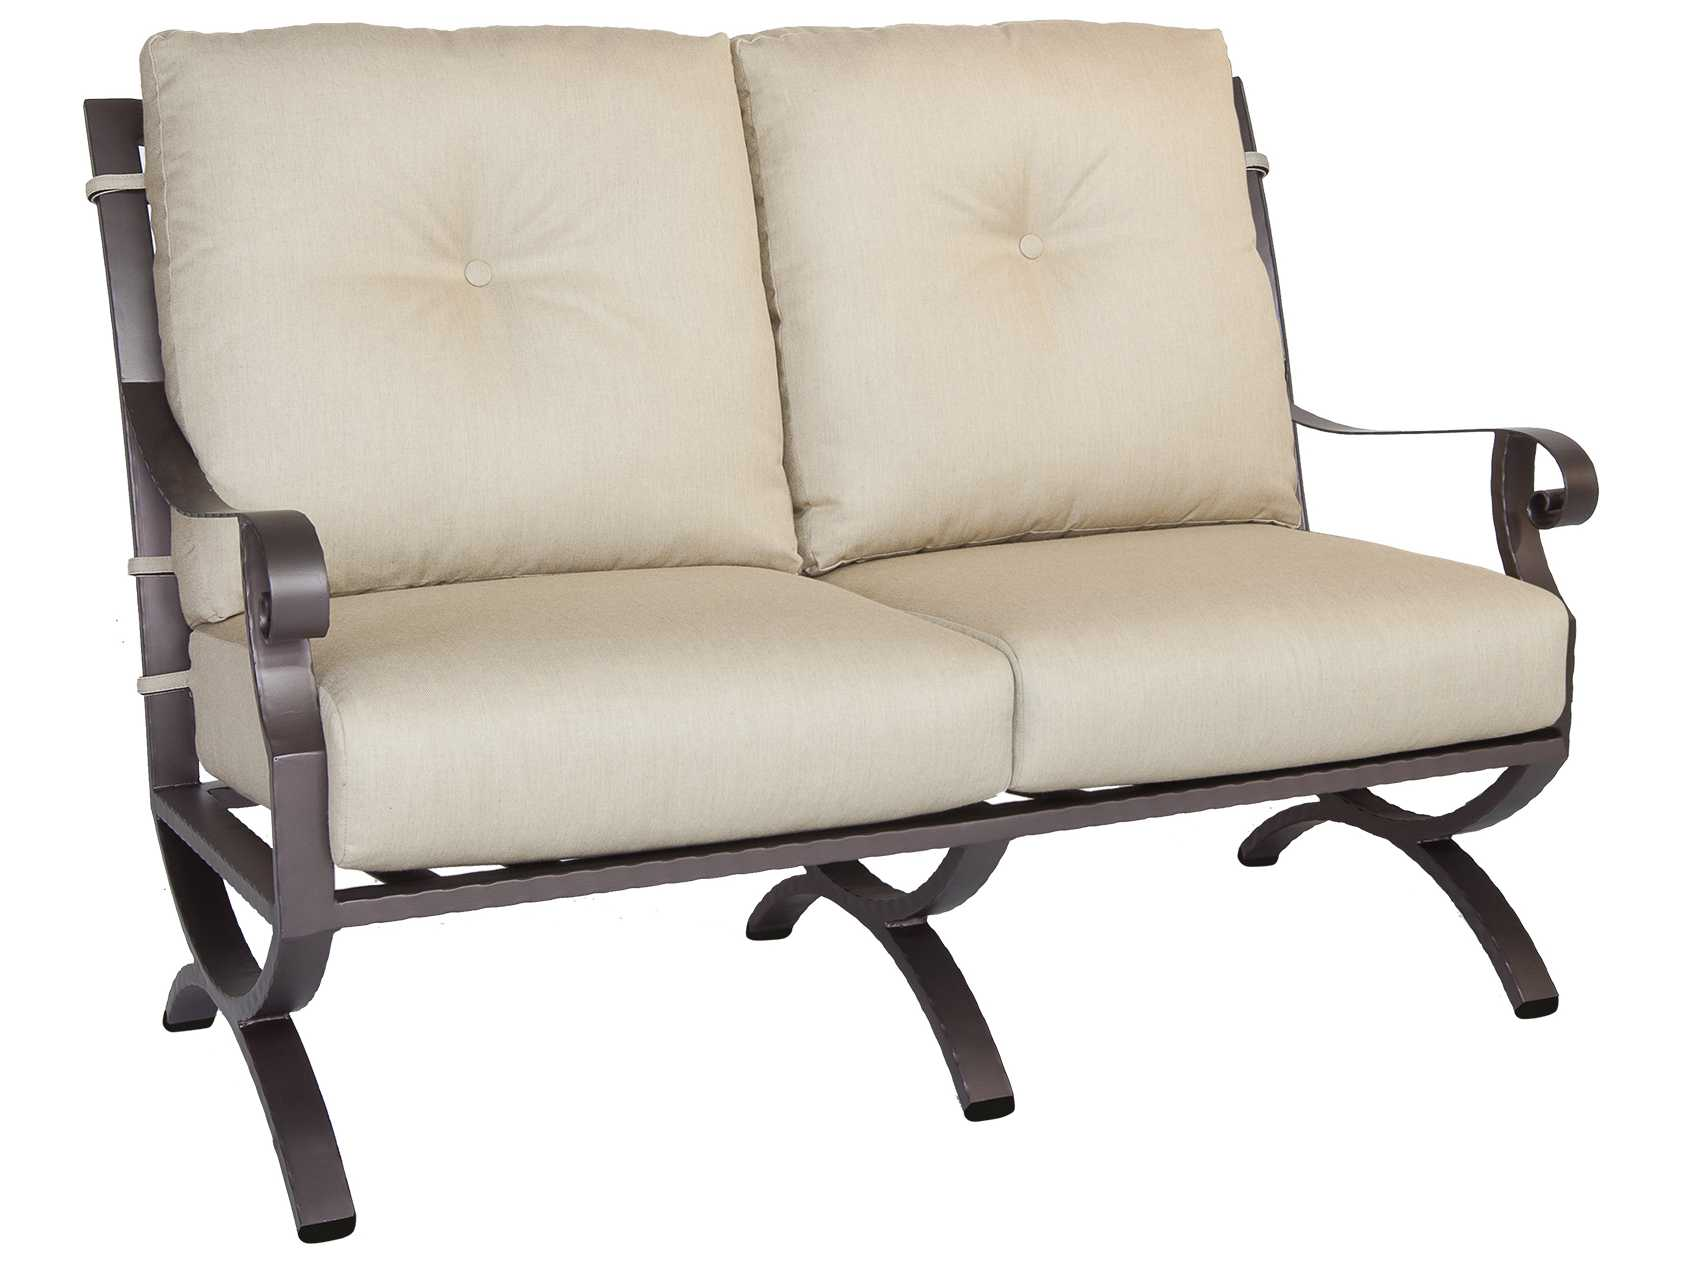 Ow Lee Luna Wrought Iron Loveseat 32125 2s